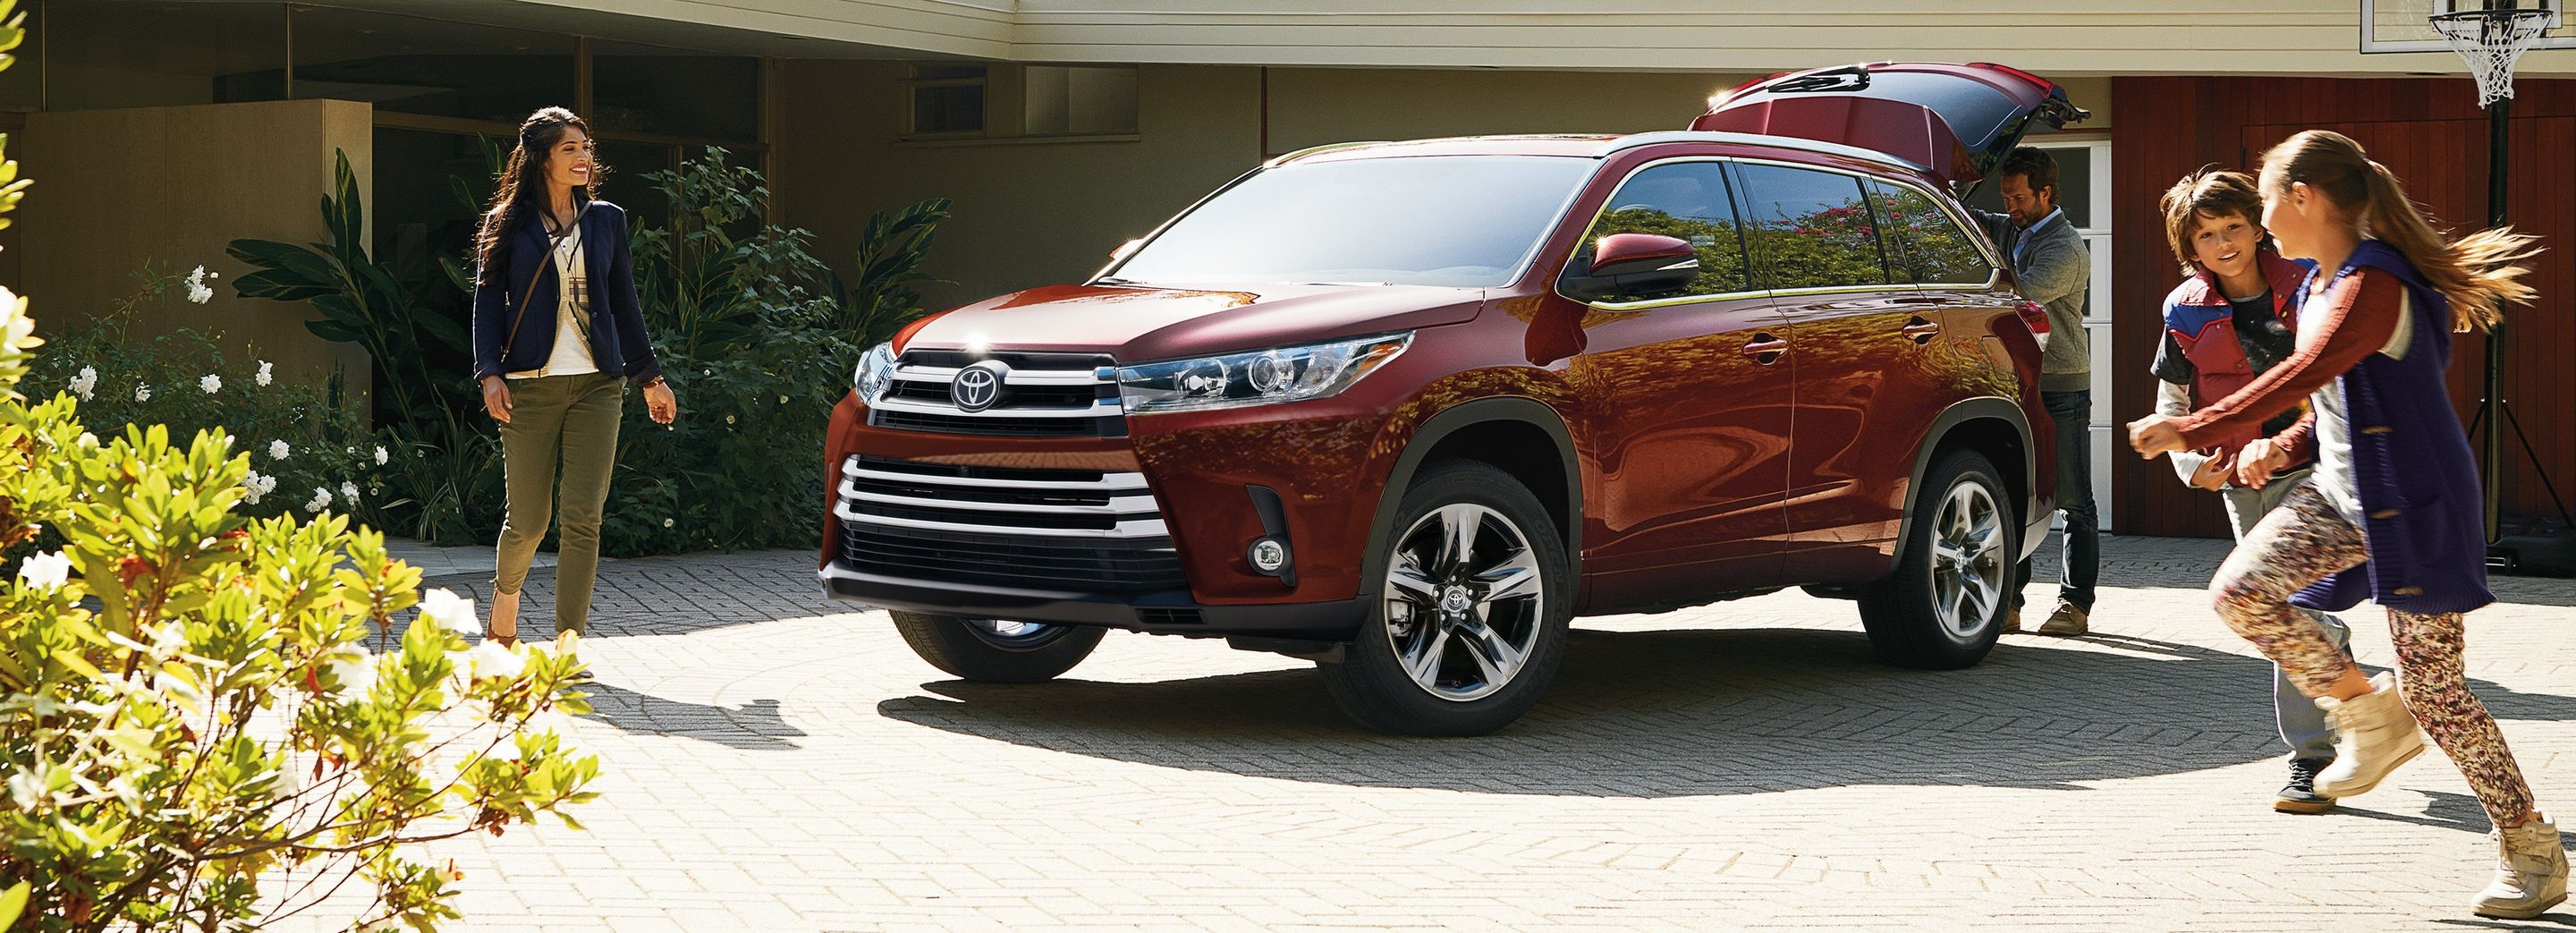 2019 Toyota Highlander Financing near Oak Brook, IL